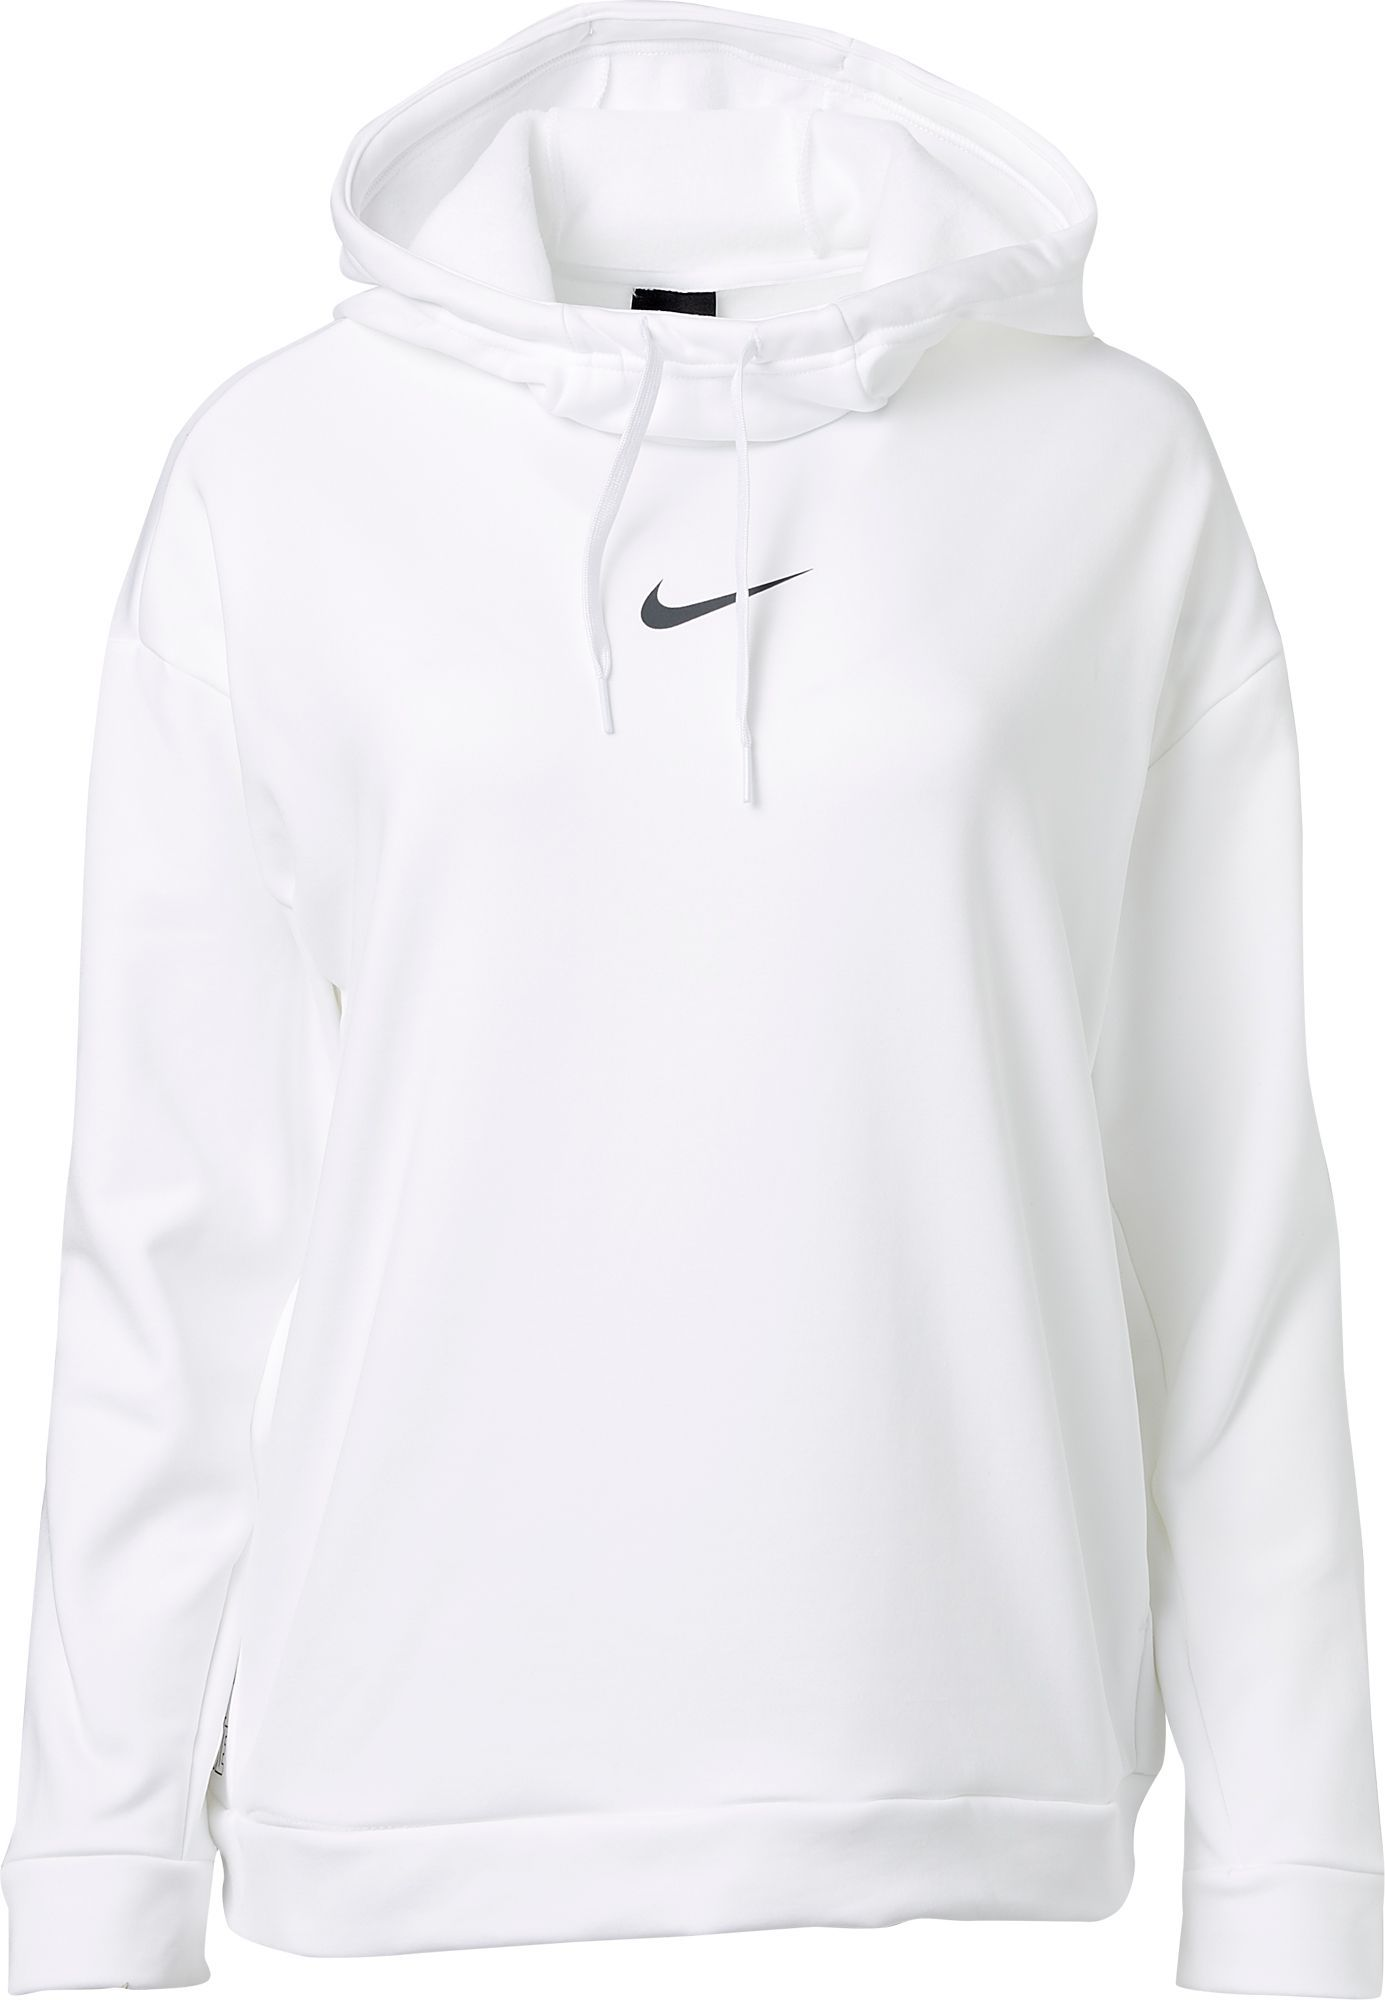 Nike Women\u0027s Therma Training Hoodie, White